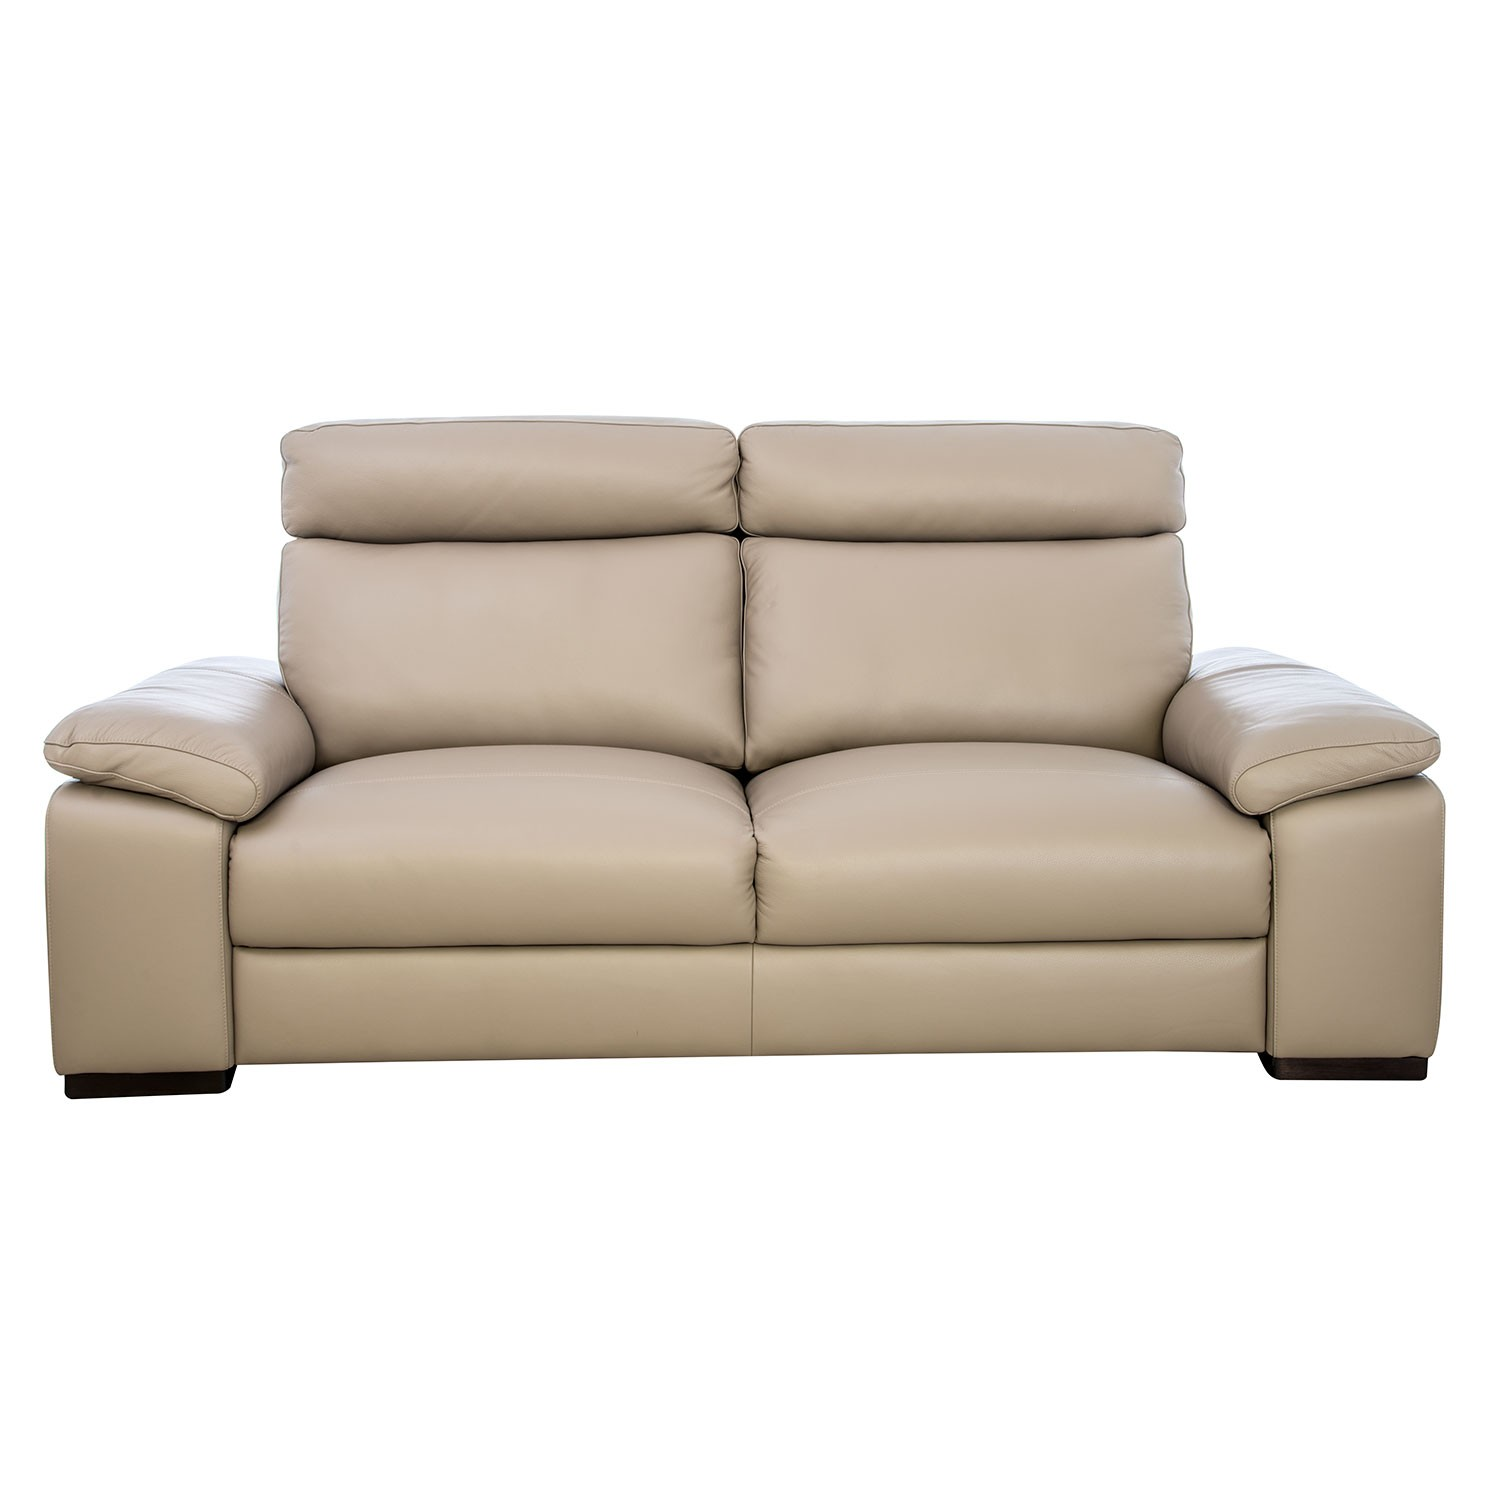 Astounding Polo Divani Merry Due Three Seater Leather Sofa Squirreltailoven Fun Painted Chair Ideas Images Squirreltailovenorg